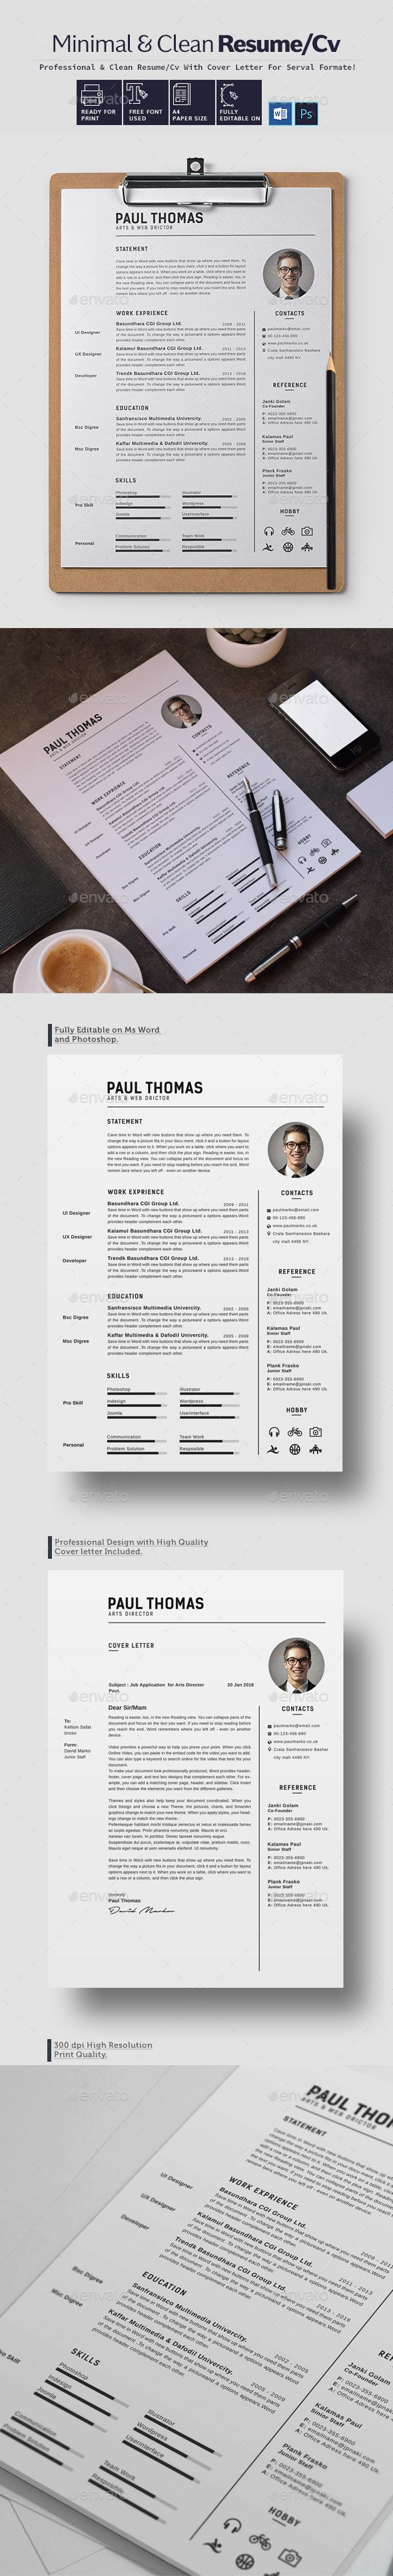 Resume by Axpand The Professional and Clean